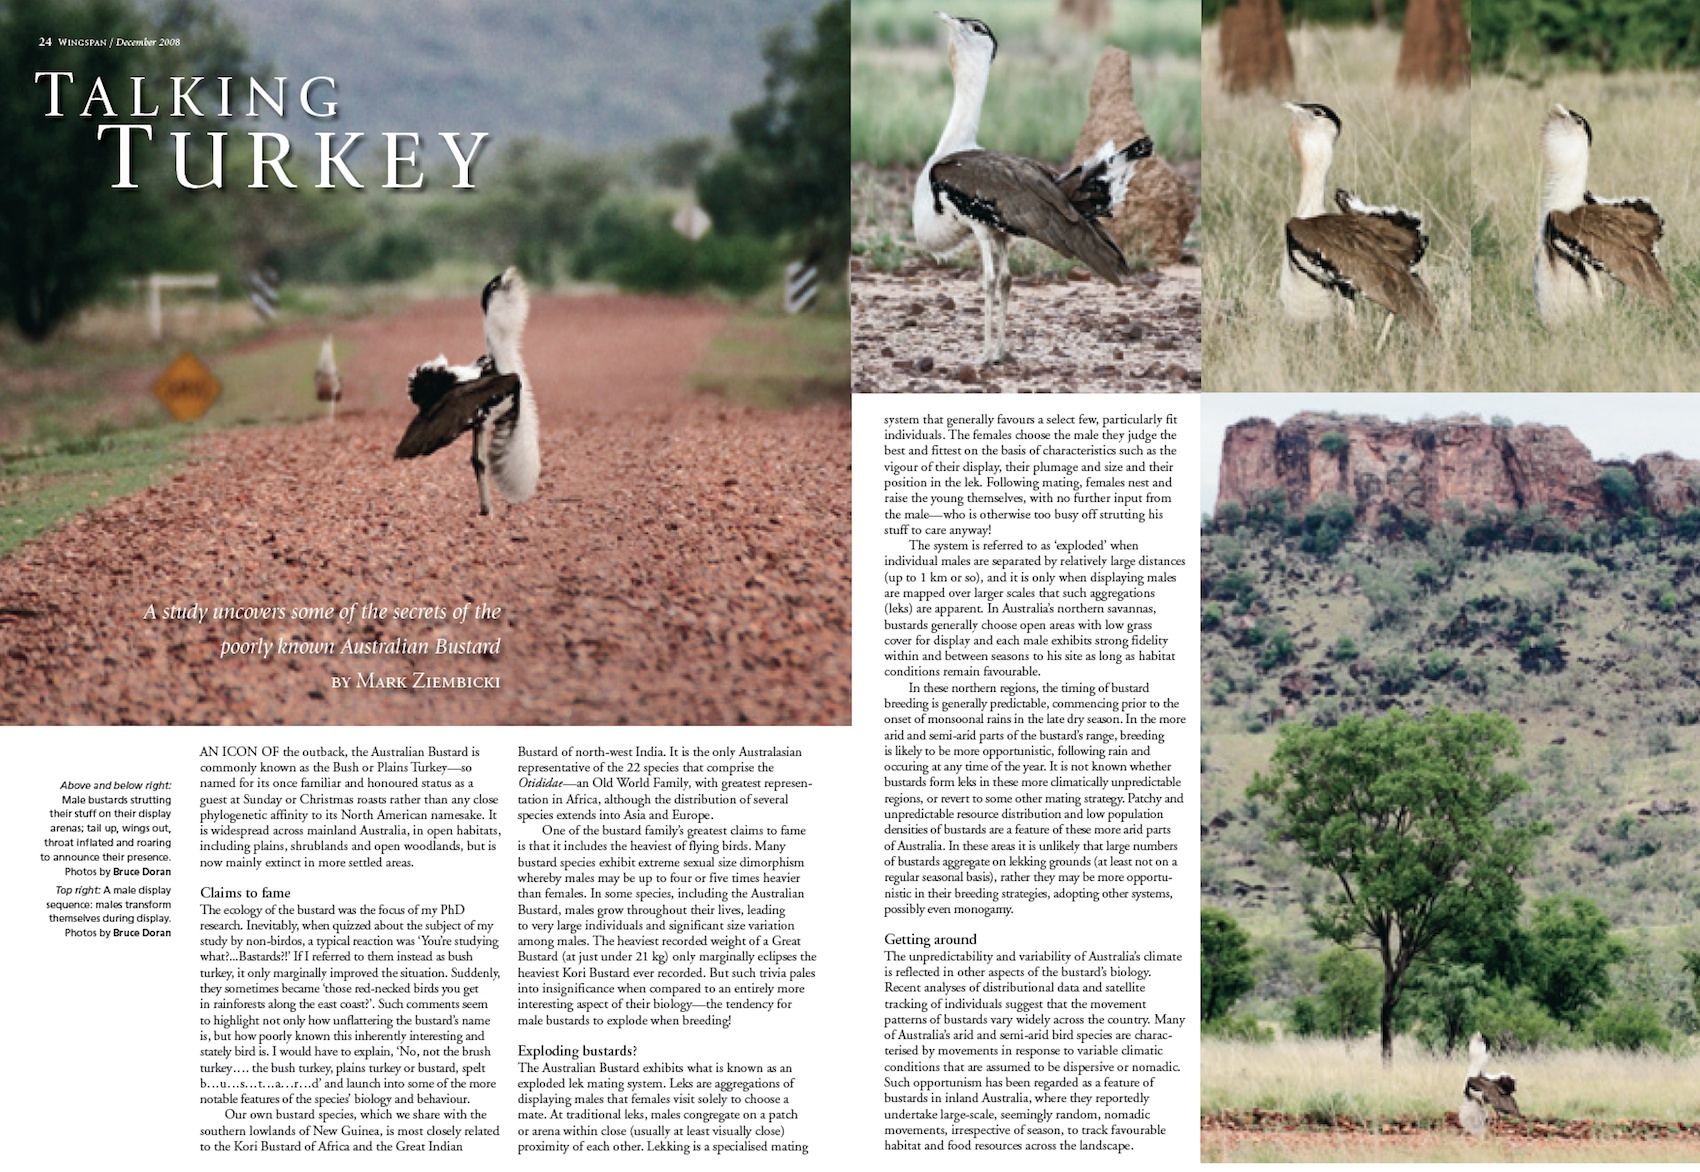 Article in Wingspan Dec 2008, including photos by Bruce Doran